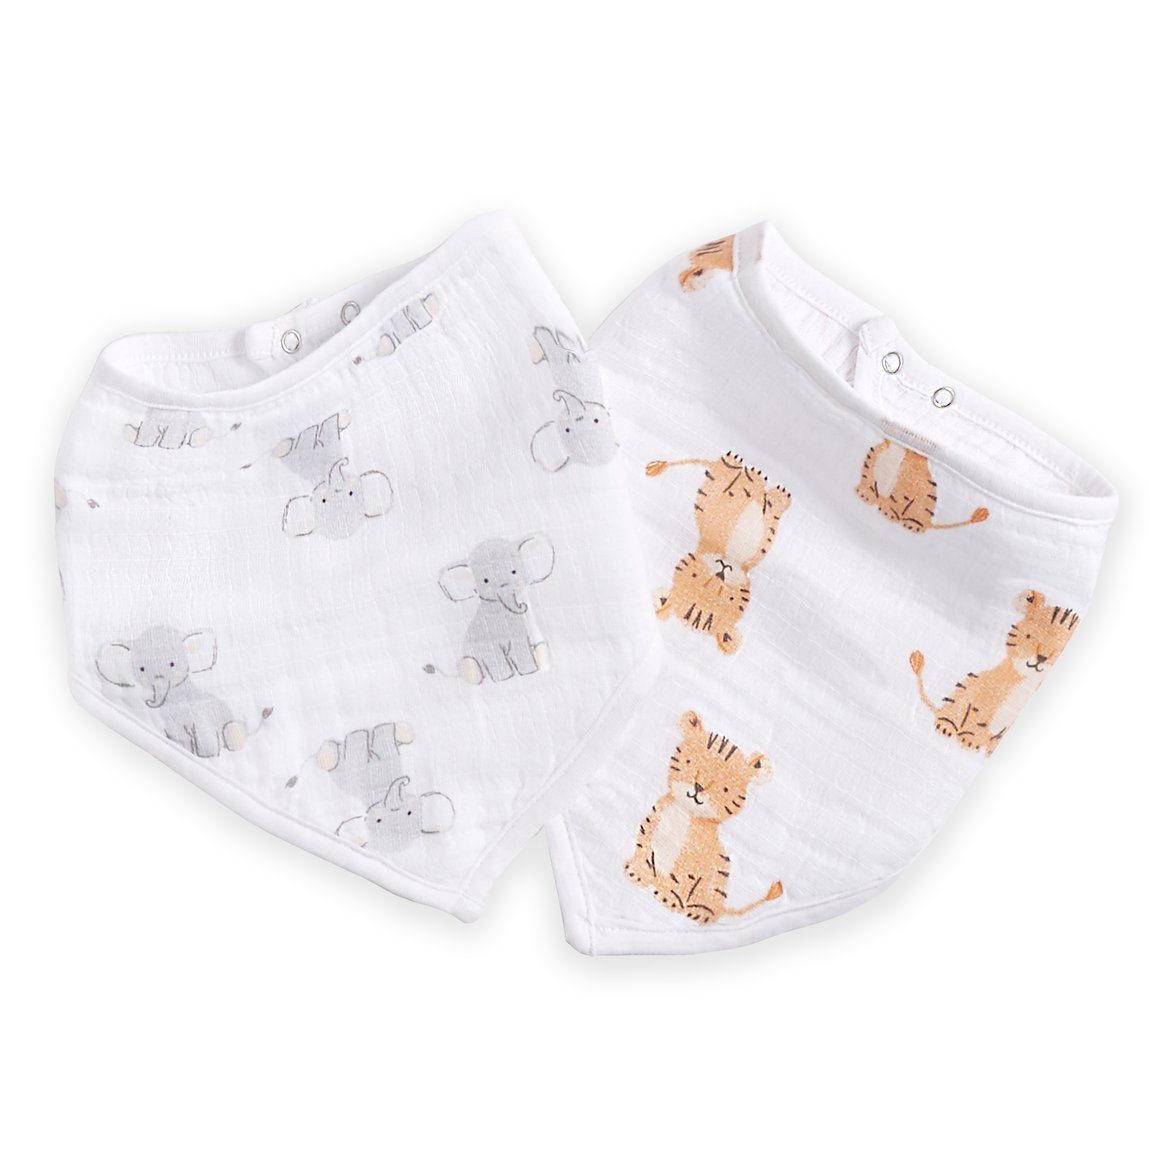 Safari Elephant & Tiger Bandana Bib (2 Pack)